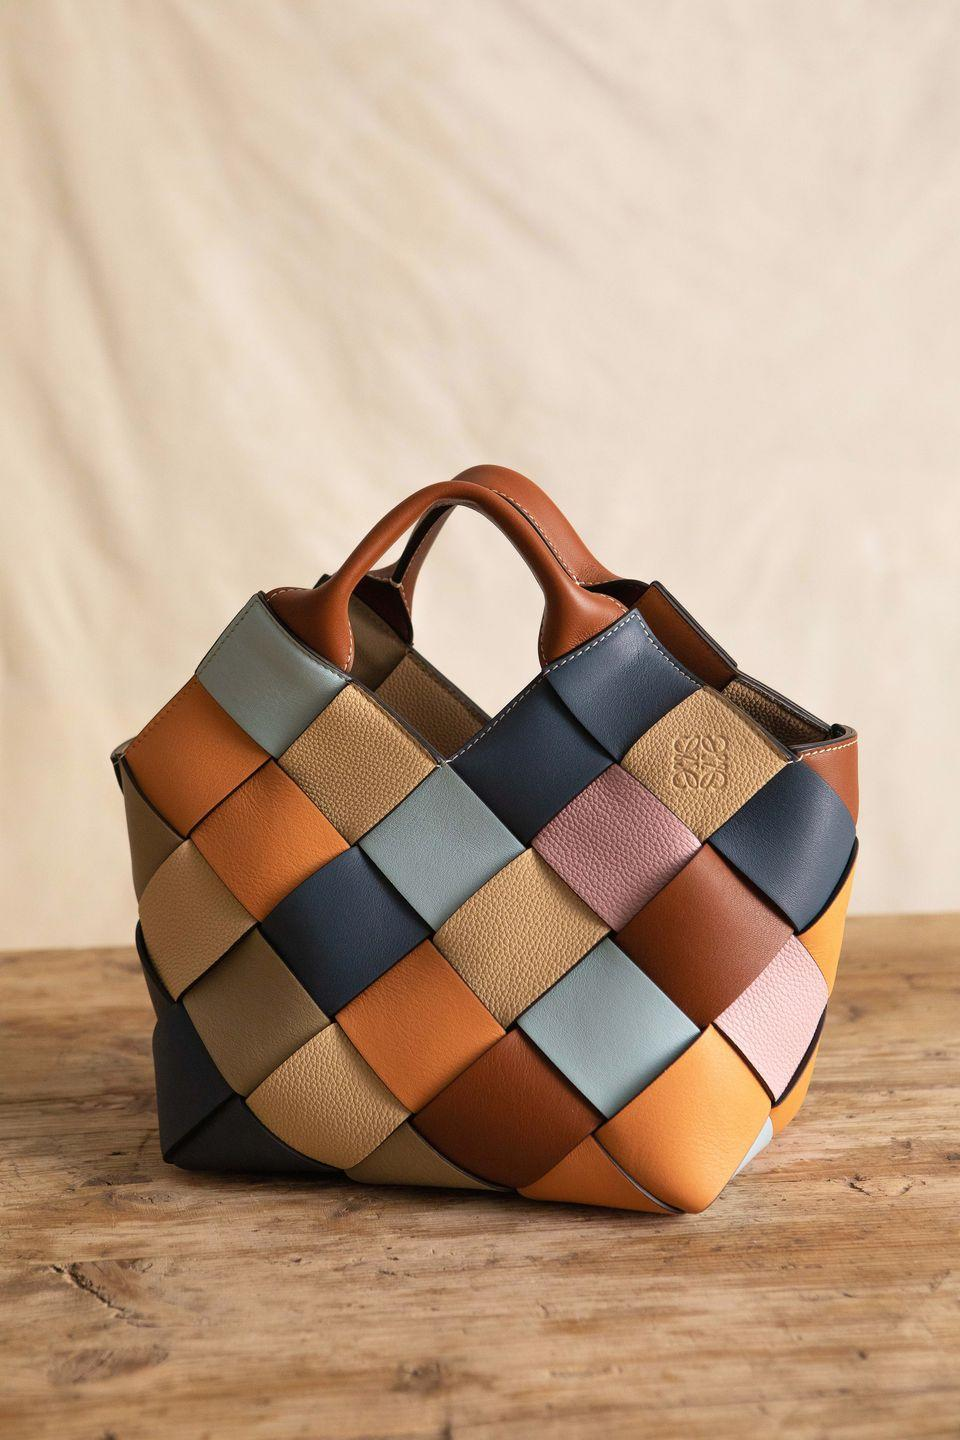 """<p><strong>Who: </strong>Loewe</p><p><strong>What: </strong>Surplus Woven tote and Crab Charms</p><p><strong>Where:</strong> Online at LOEWE.com</p><p><strong>Why: </strong>It's no secret that Loewe handbags are some of the most luxurious and well-crafted leather goods in the business. Jonathan Anderson's craftsman touch can be seen in the Surplus Woven tote bags, made from scraps of grained and smooth leather from previous seasons, tightening the production circle and maximizing the use of raw materials. The result is a timelessly gorgeous piece of art that's practical and durable.</p><p><a class=""""link rapid-noclick-resp"""" href=""""https://www.loewe.com/usa/en/home"""" rel=""""nofollow noopener"""" target=""""_blank"""" data-ylk=""""slk:SHOP NOW"""">SHOP NOW</a><br><strong><br></strong></p>"""